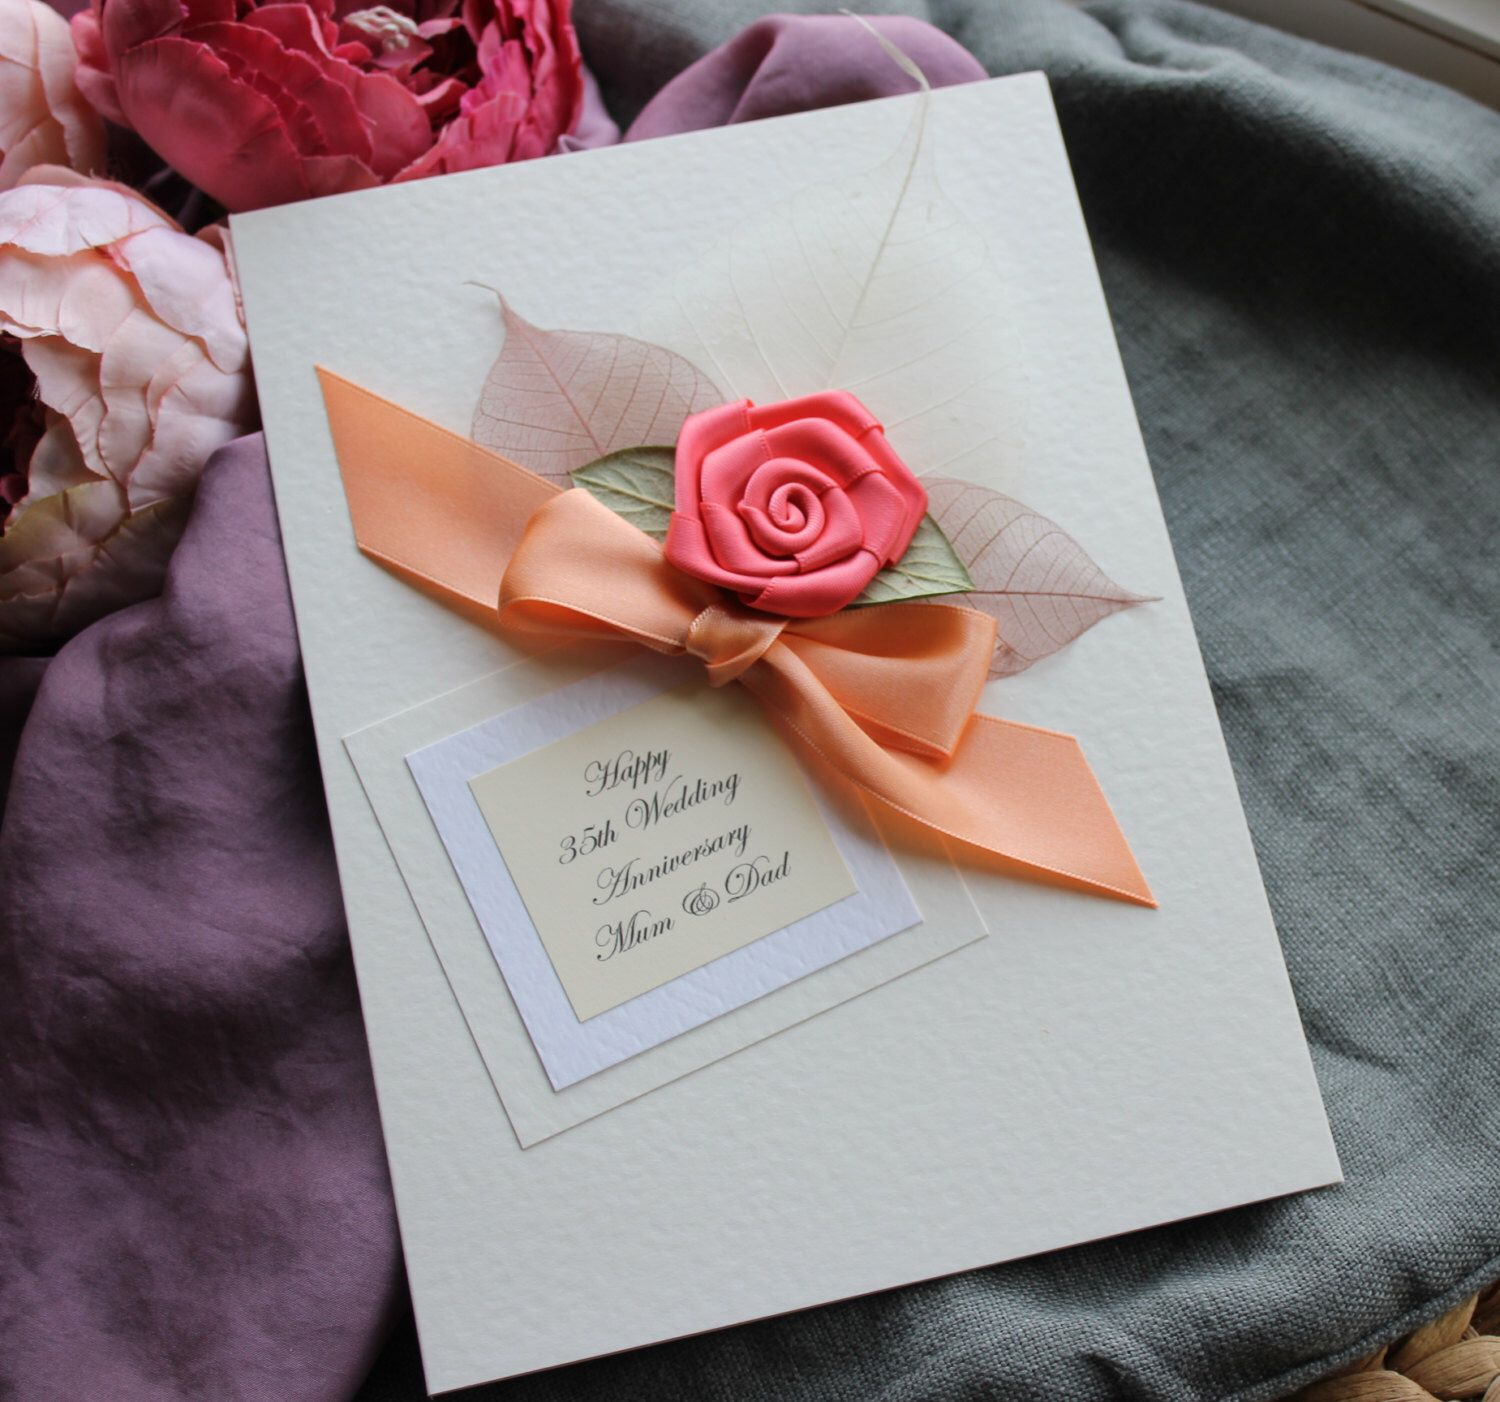 Personalised Handmade Card Coral 35th Wedding Anniversary Parents Wife 1st First One Year 18th 21st